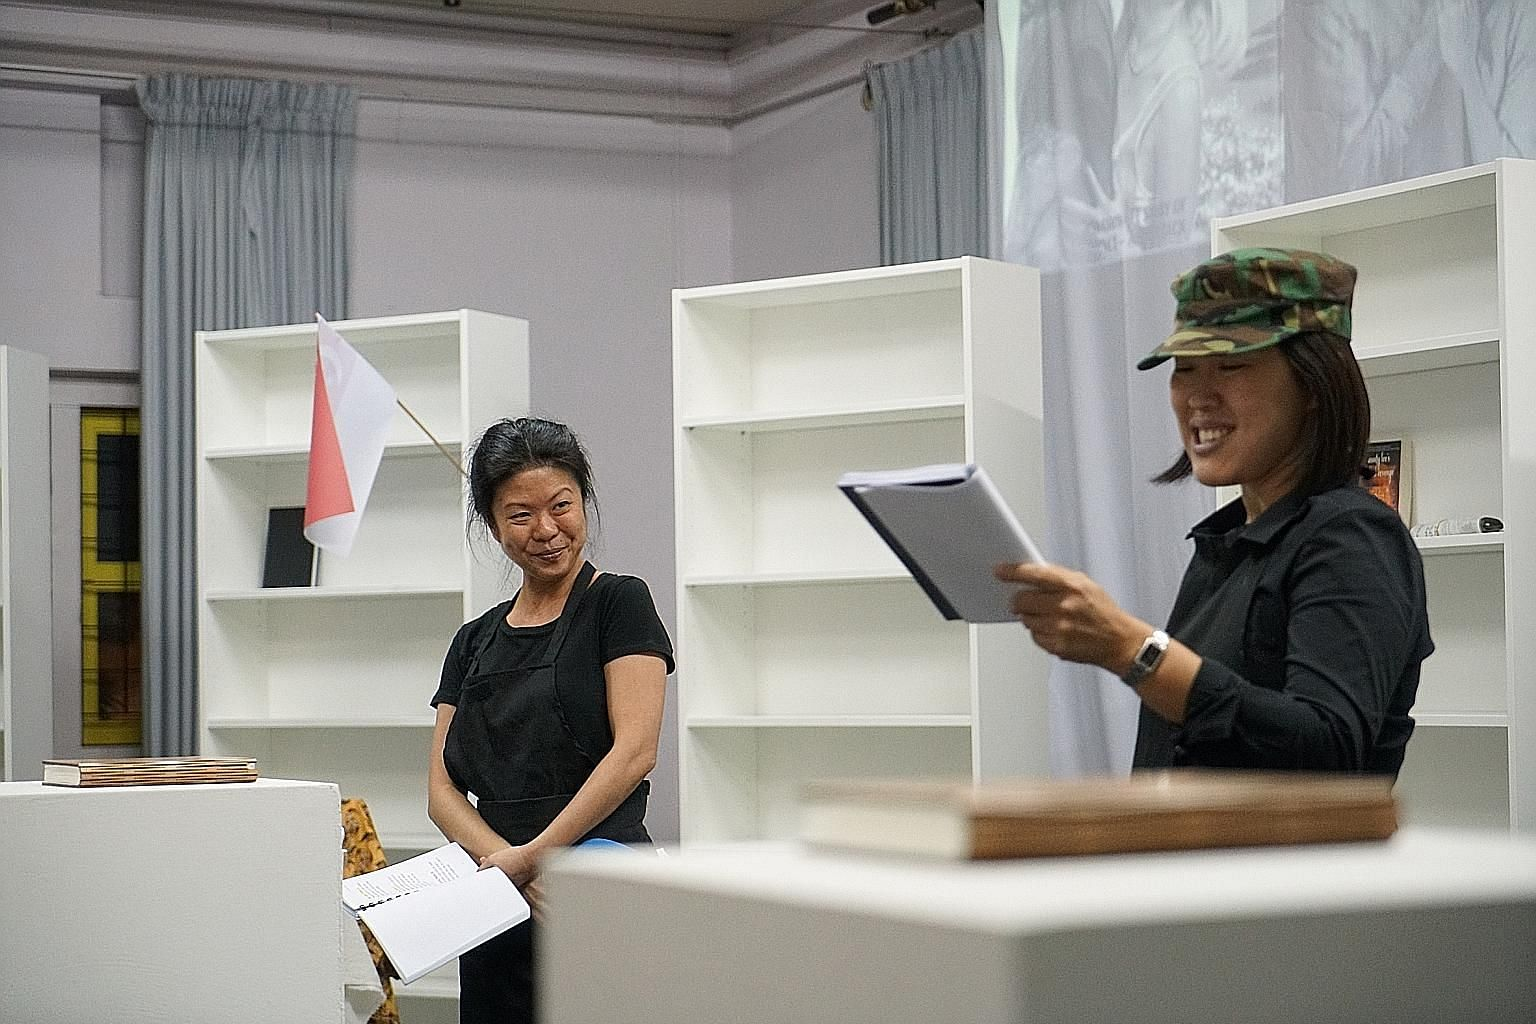 Jean Ng (left) and Serene Chen read extracts from academic journals, book reviews and news reports about writers, publishers and the books industry in Rant And Rave II.